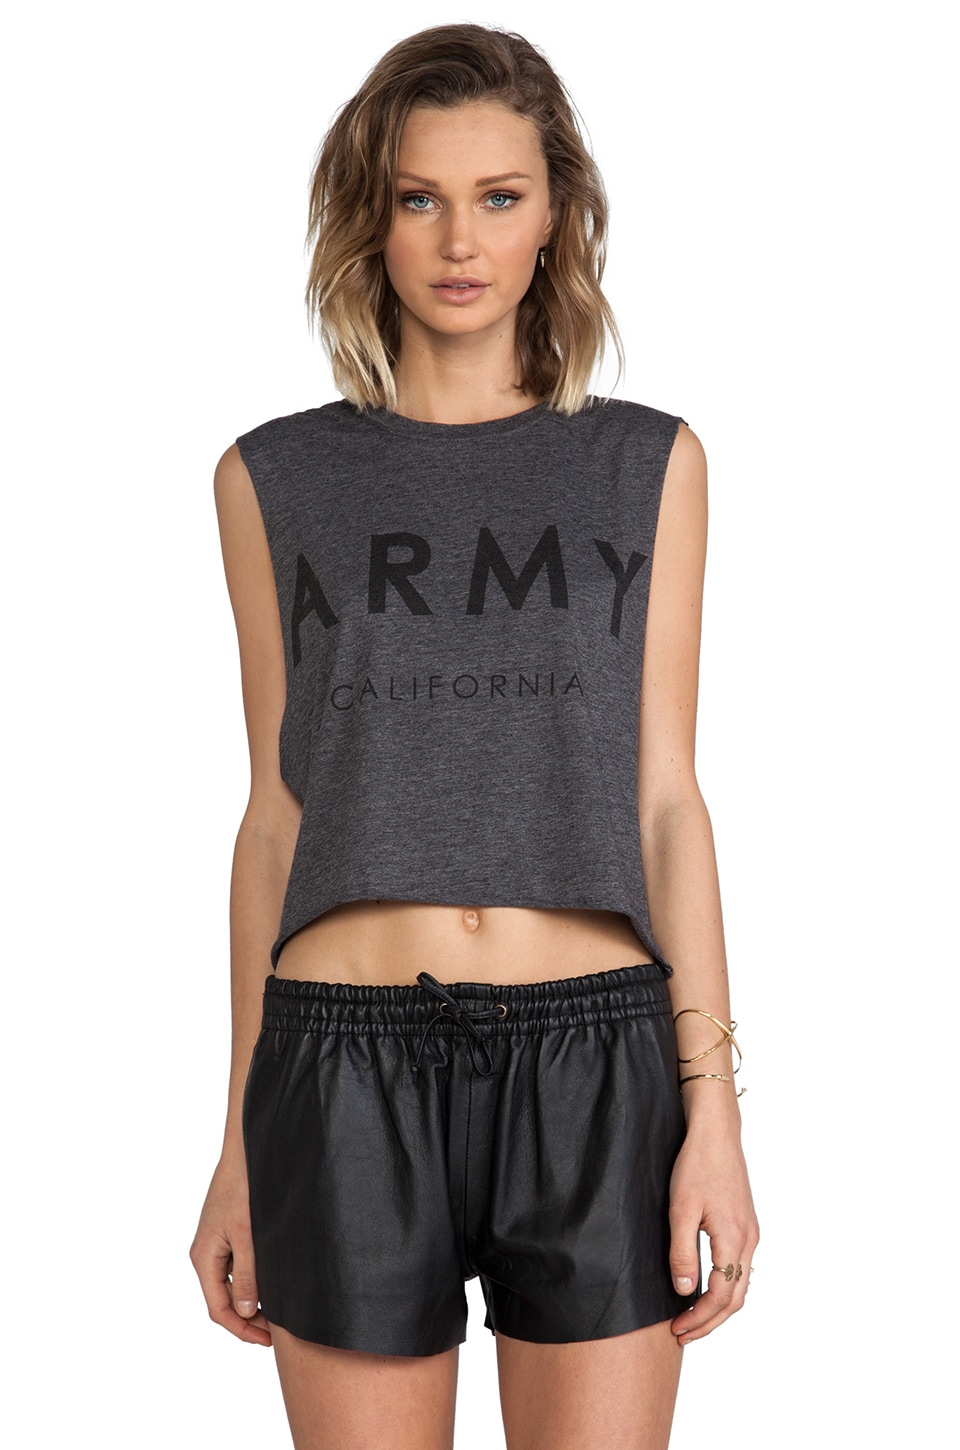 The Laundry Room Army California Crop Muscle Tee in Charcoal